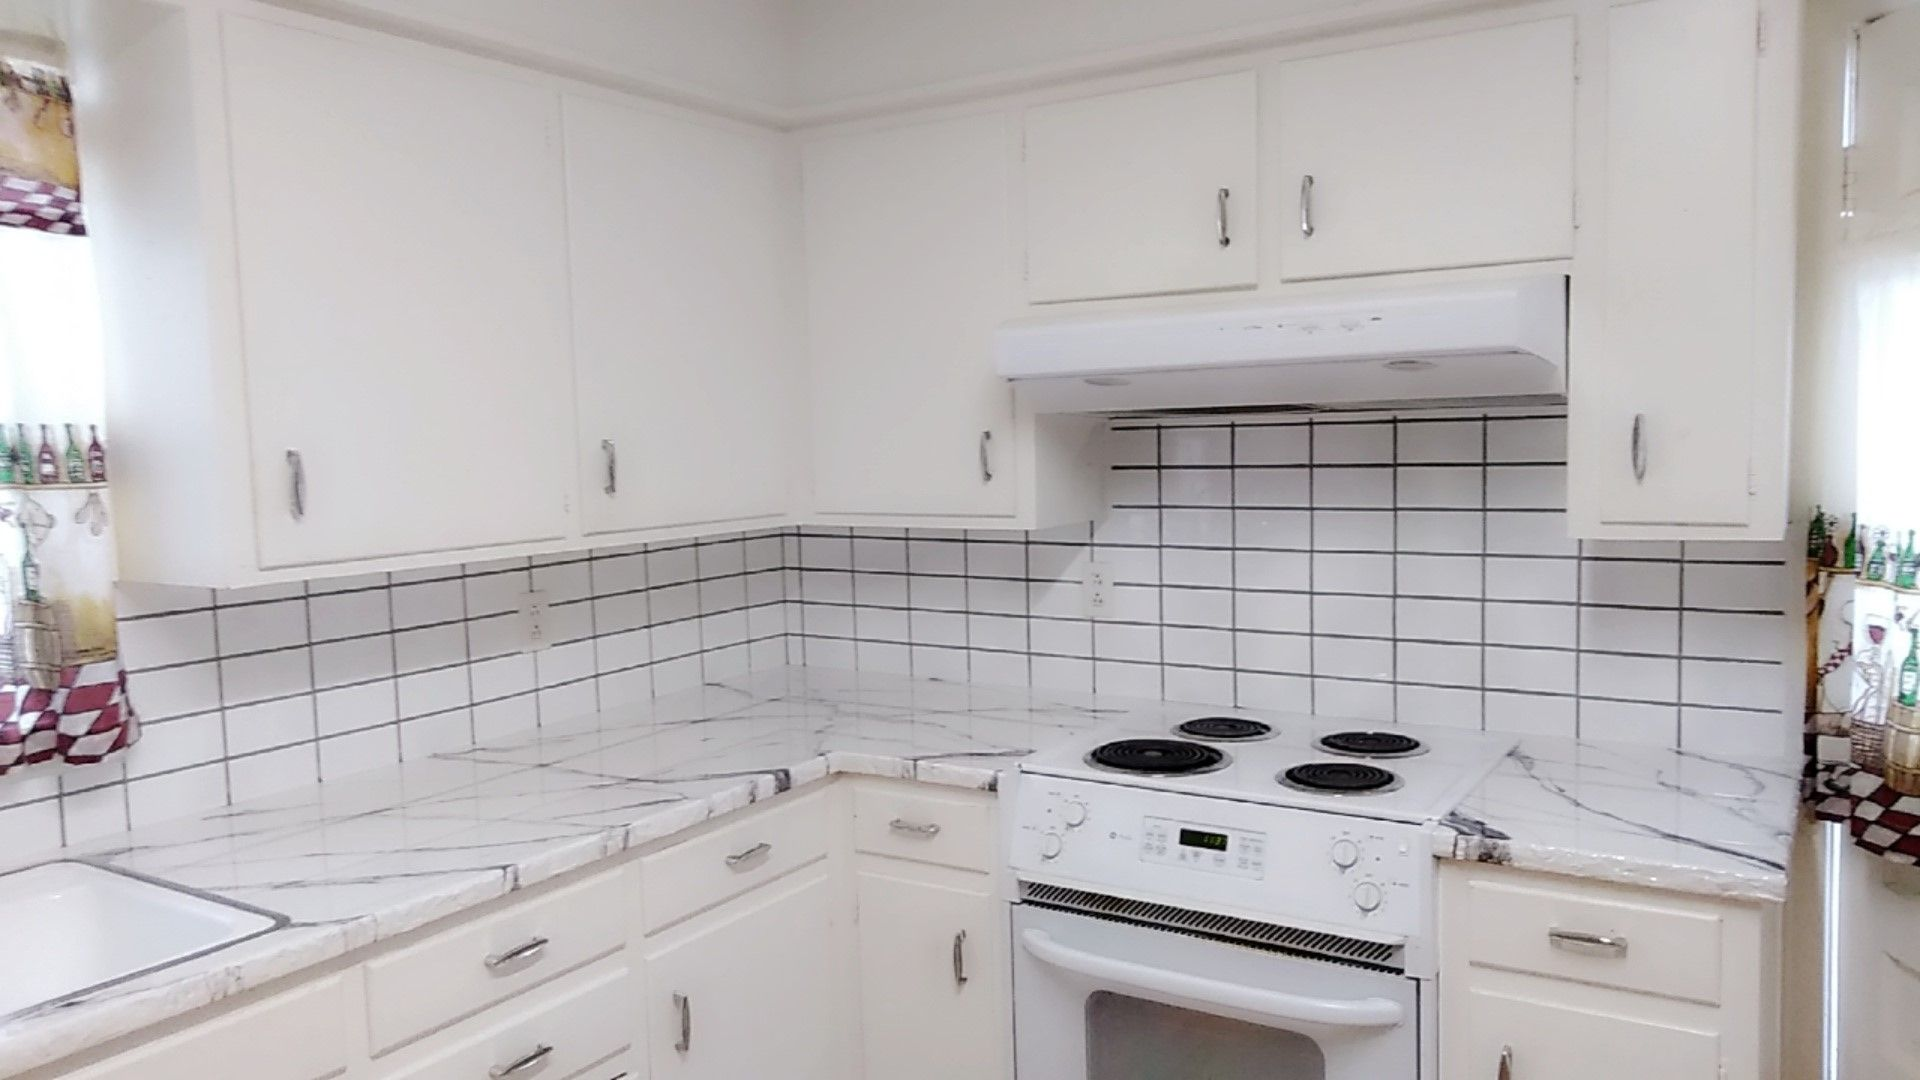 Black and white marble countertops with unfinished rock edges and white subway tile with gray grout for the back splash